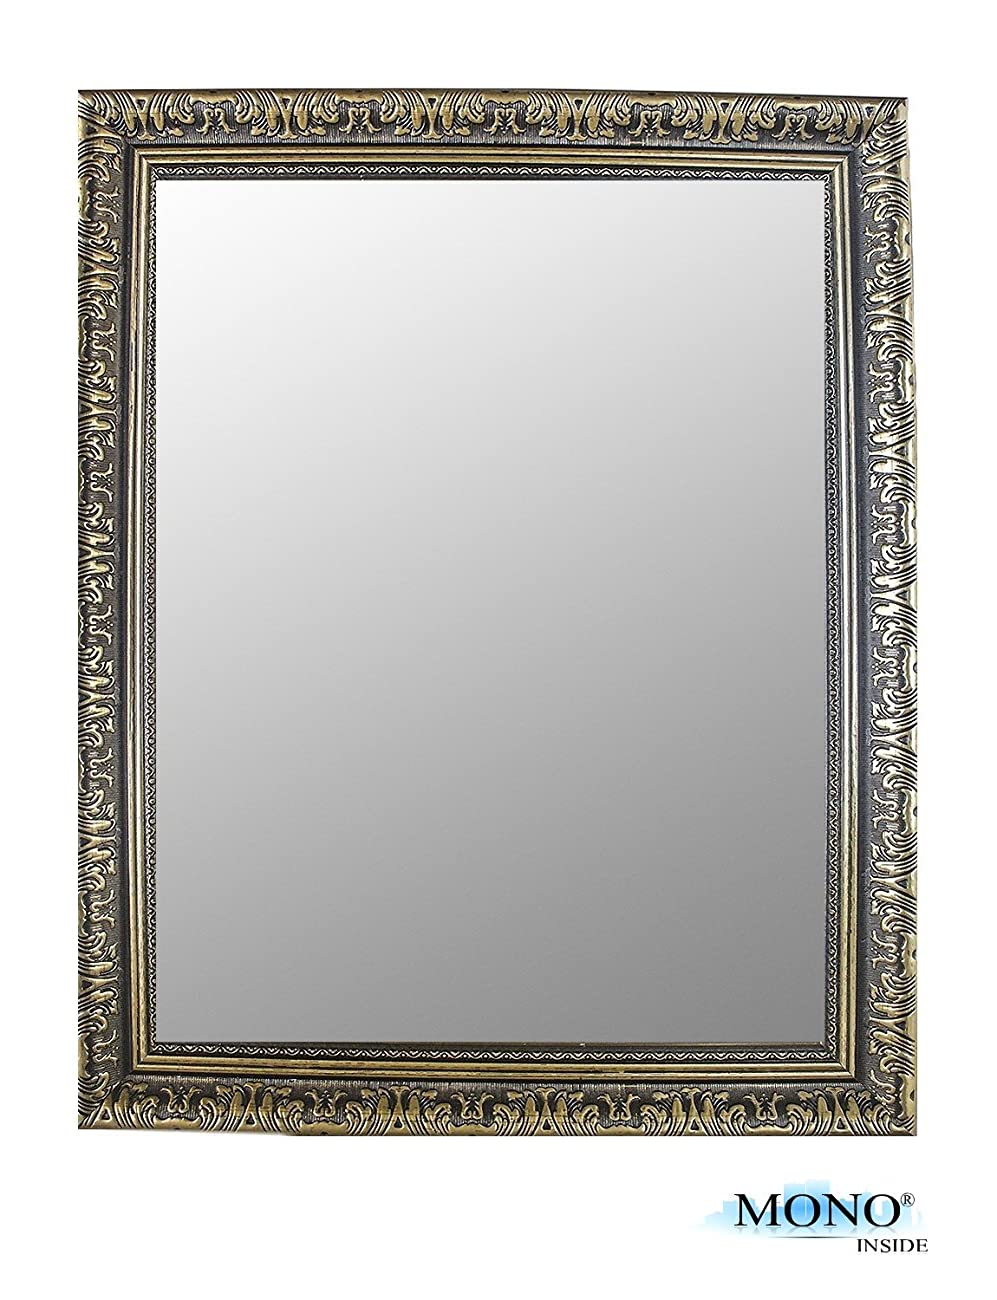 MONOINSIDE® Classic, Antique & Vintage, Rectangular Square Wall Of Mirror, Size 18